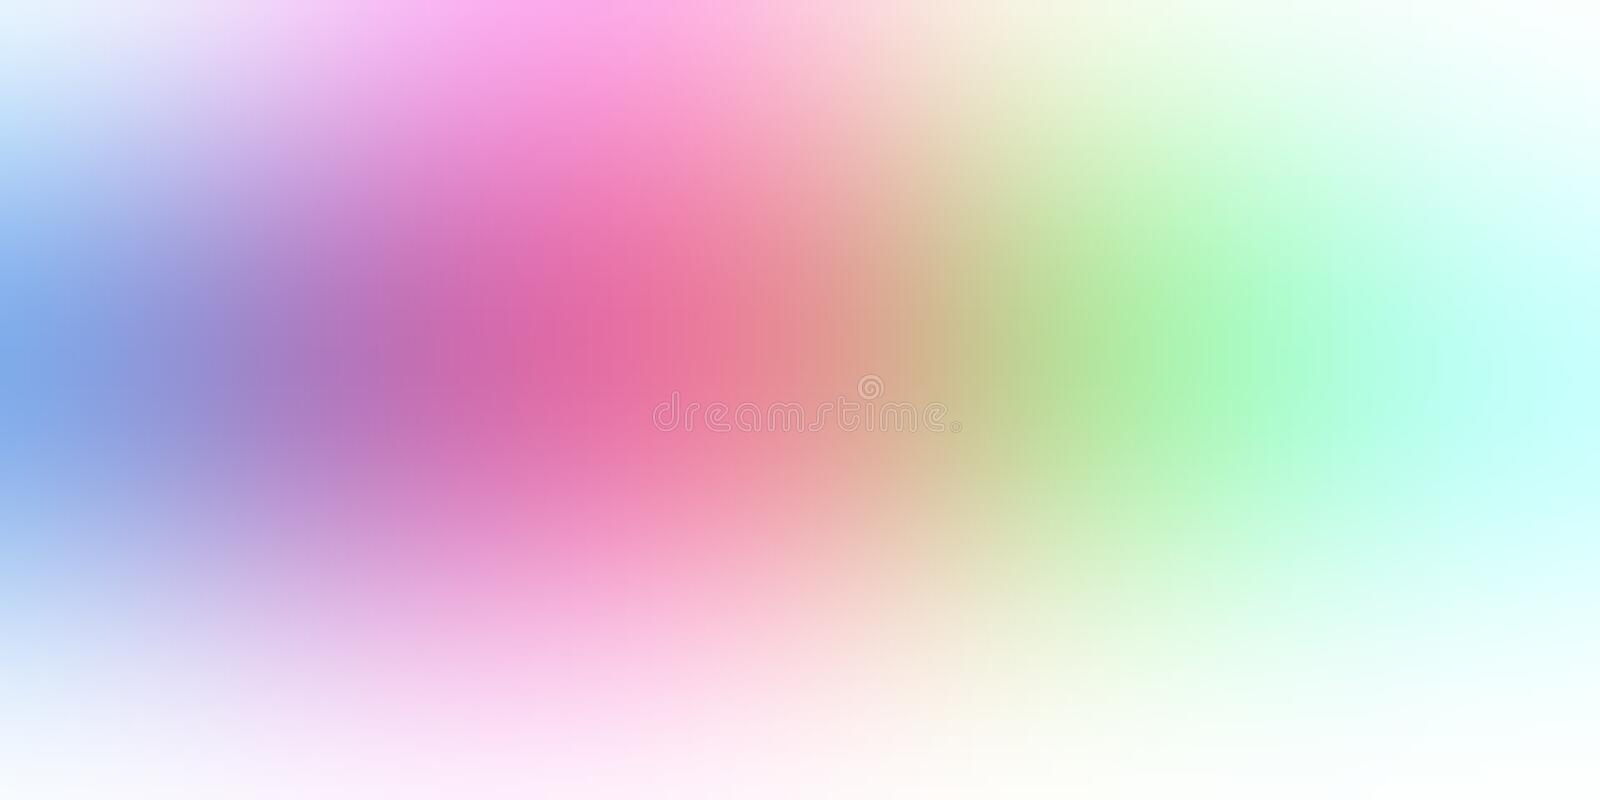 Pastel color abstract blur background wallpaper, vector illustration. royalty free stock photo